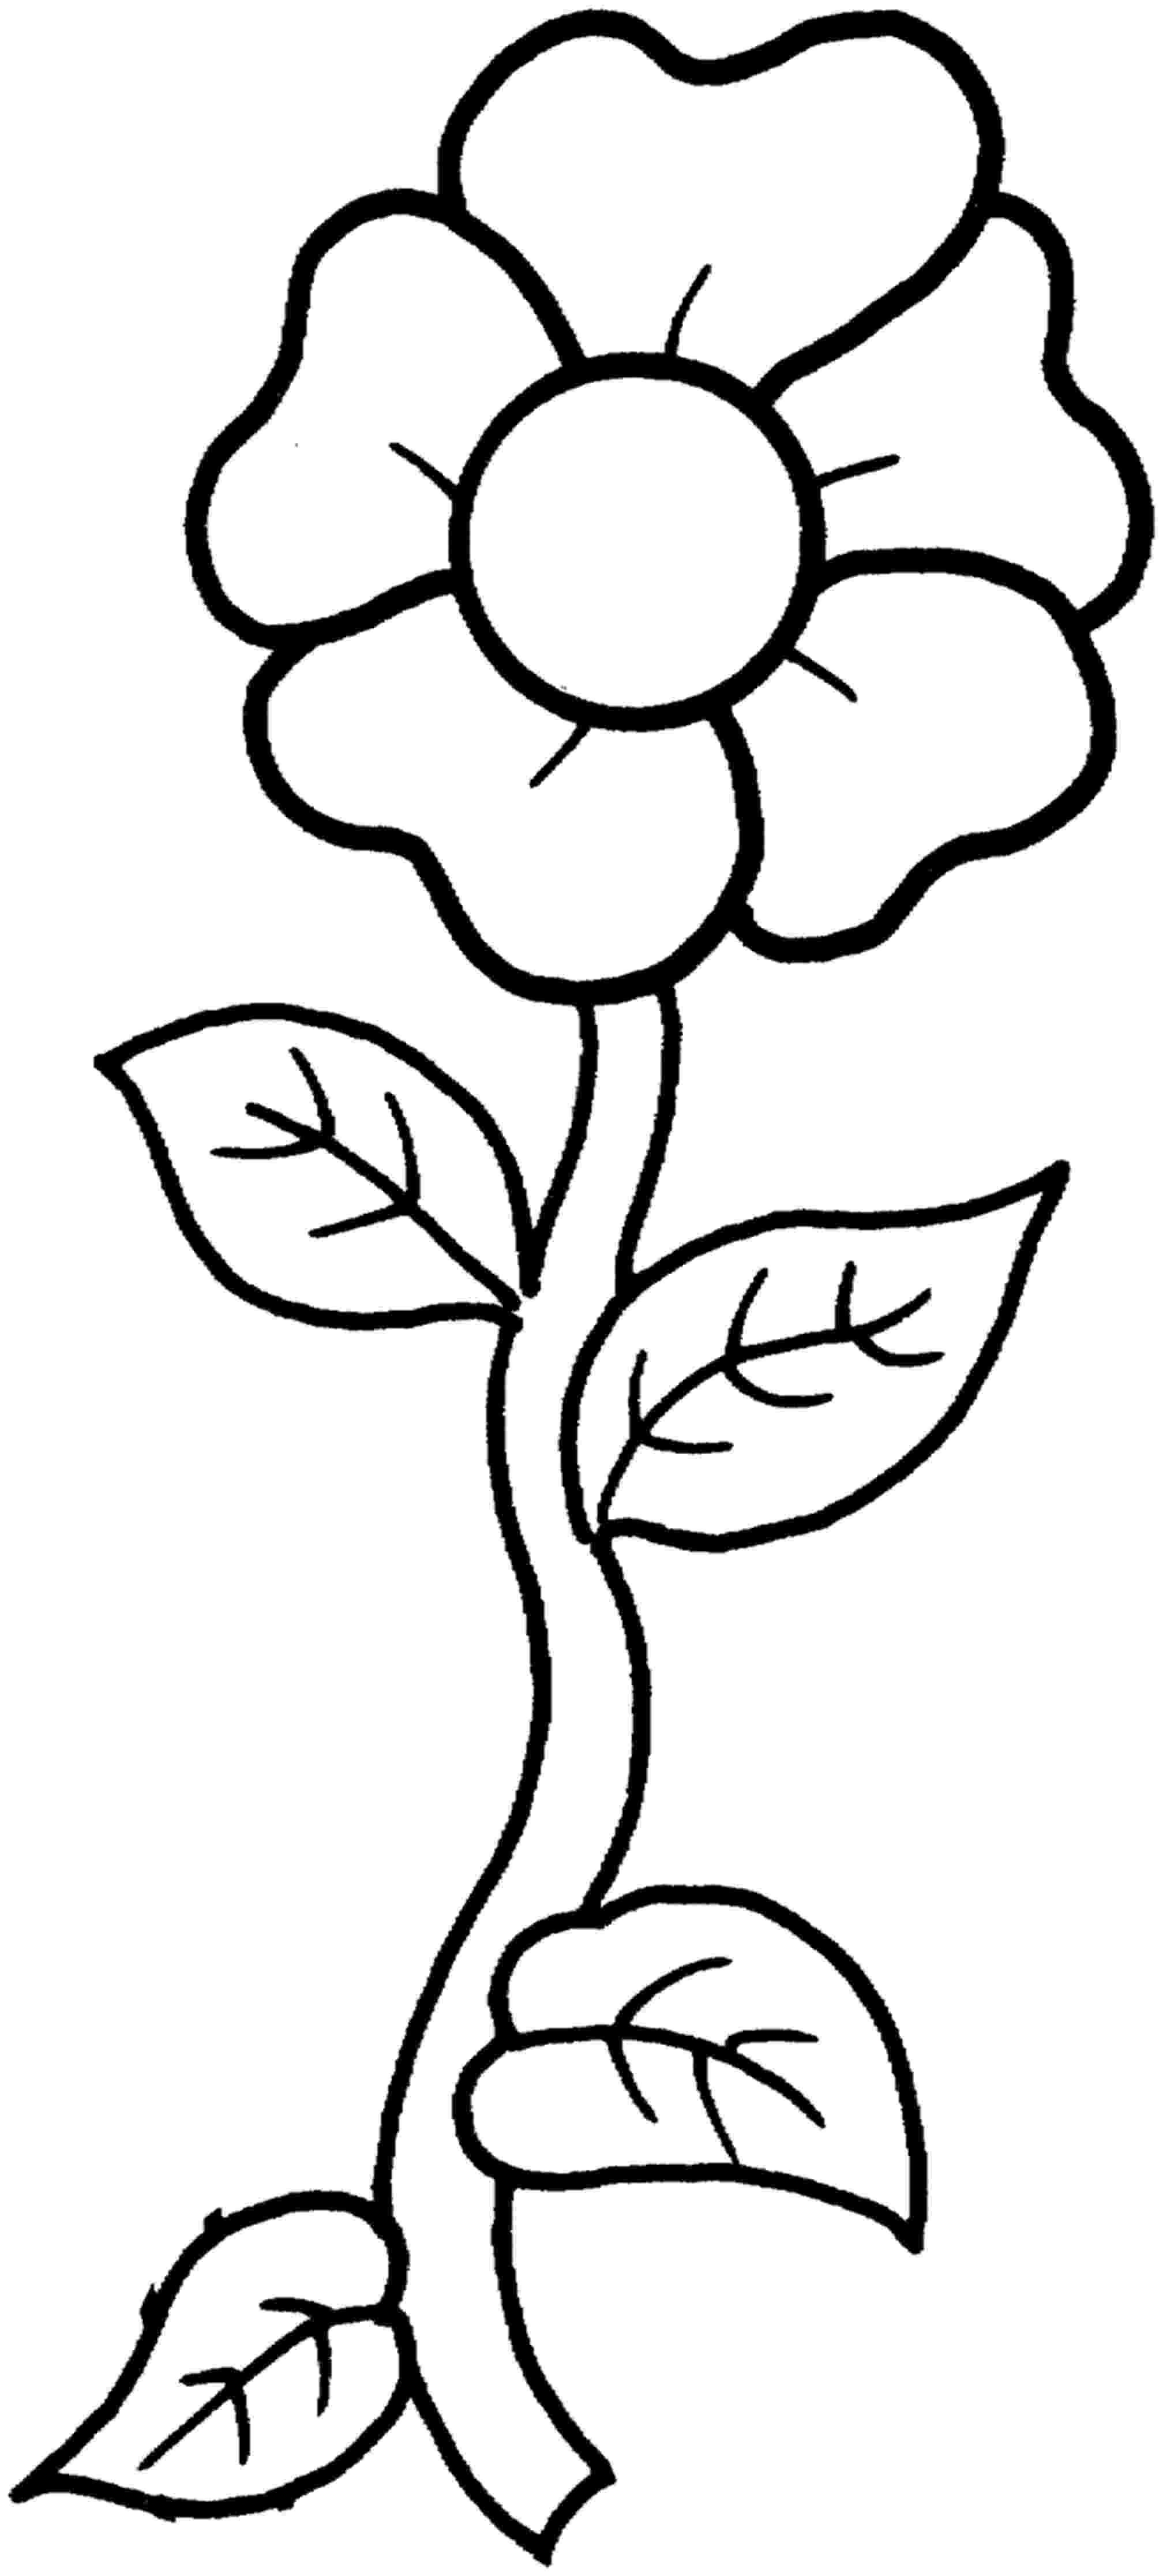 flowers printable coloring pages spring flower coloring pages to download and print for free flowers pages coloring printable